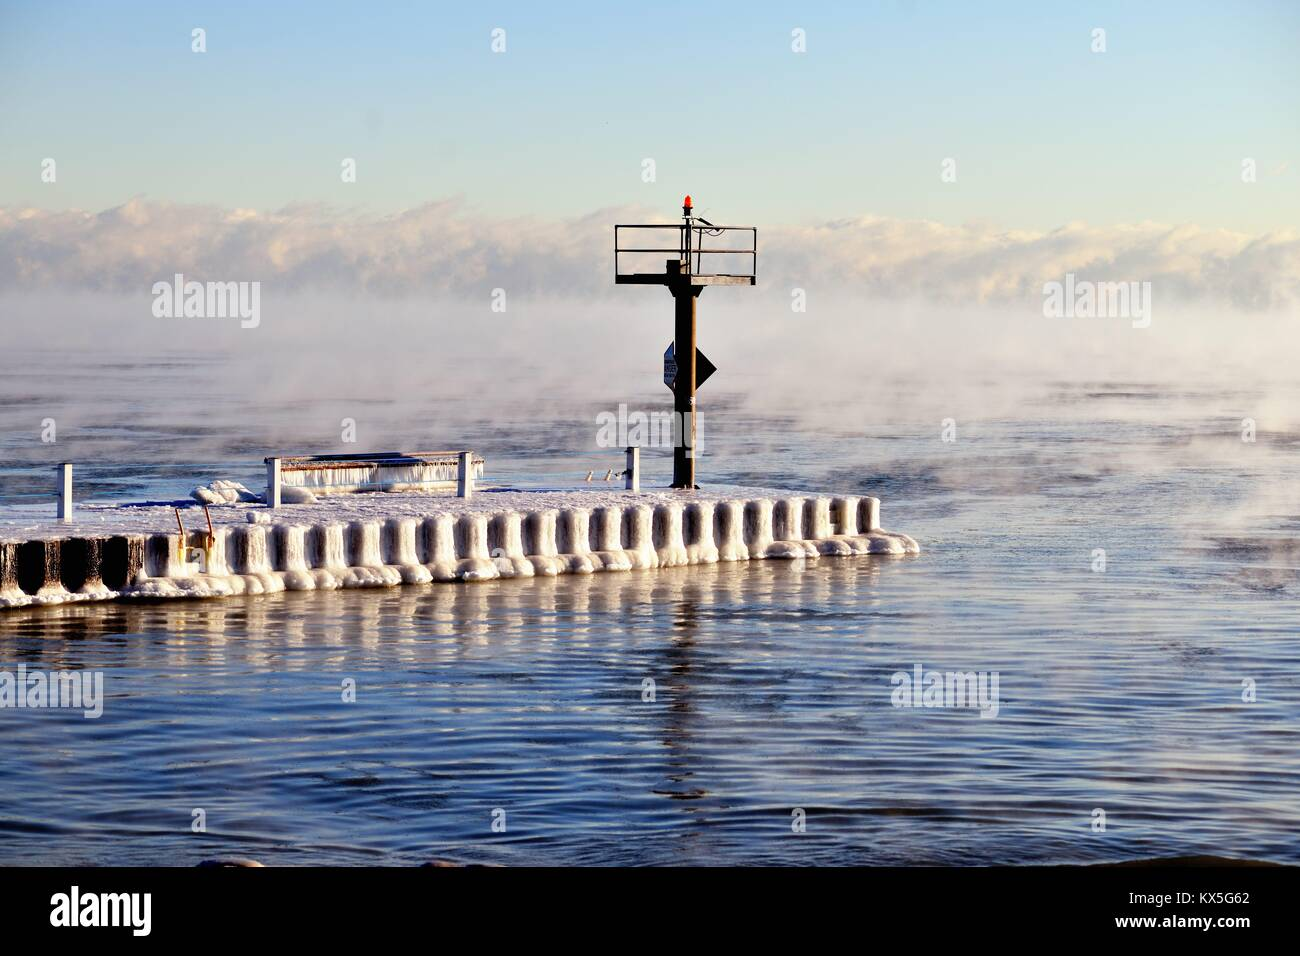 Ice forms on a breakwater as vapor rises from the Lake Michigan waters as ice forms in Chicago's 31st Street - Stock Image